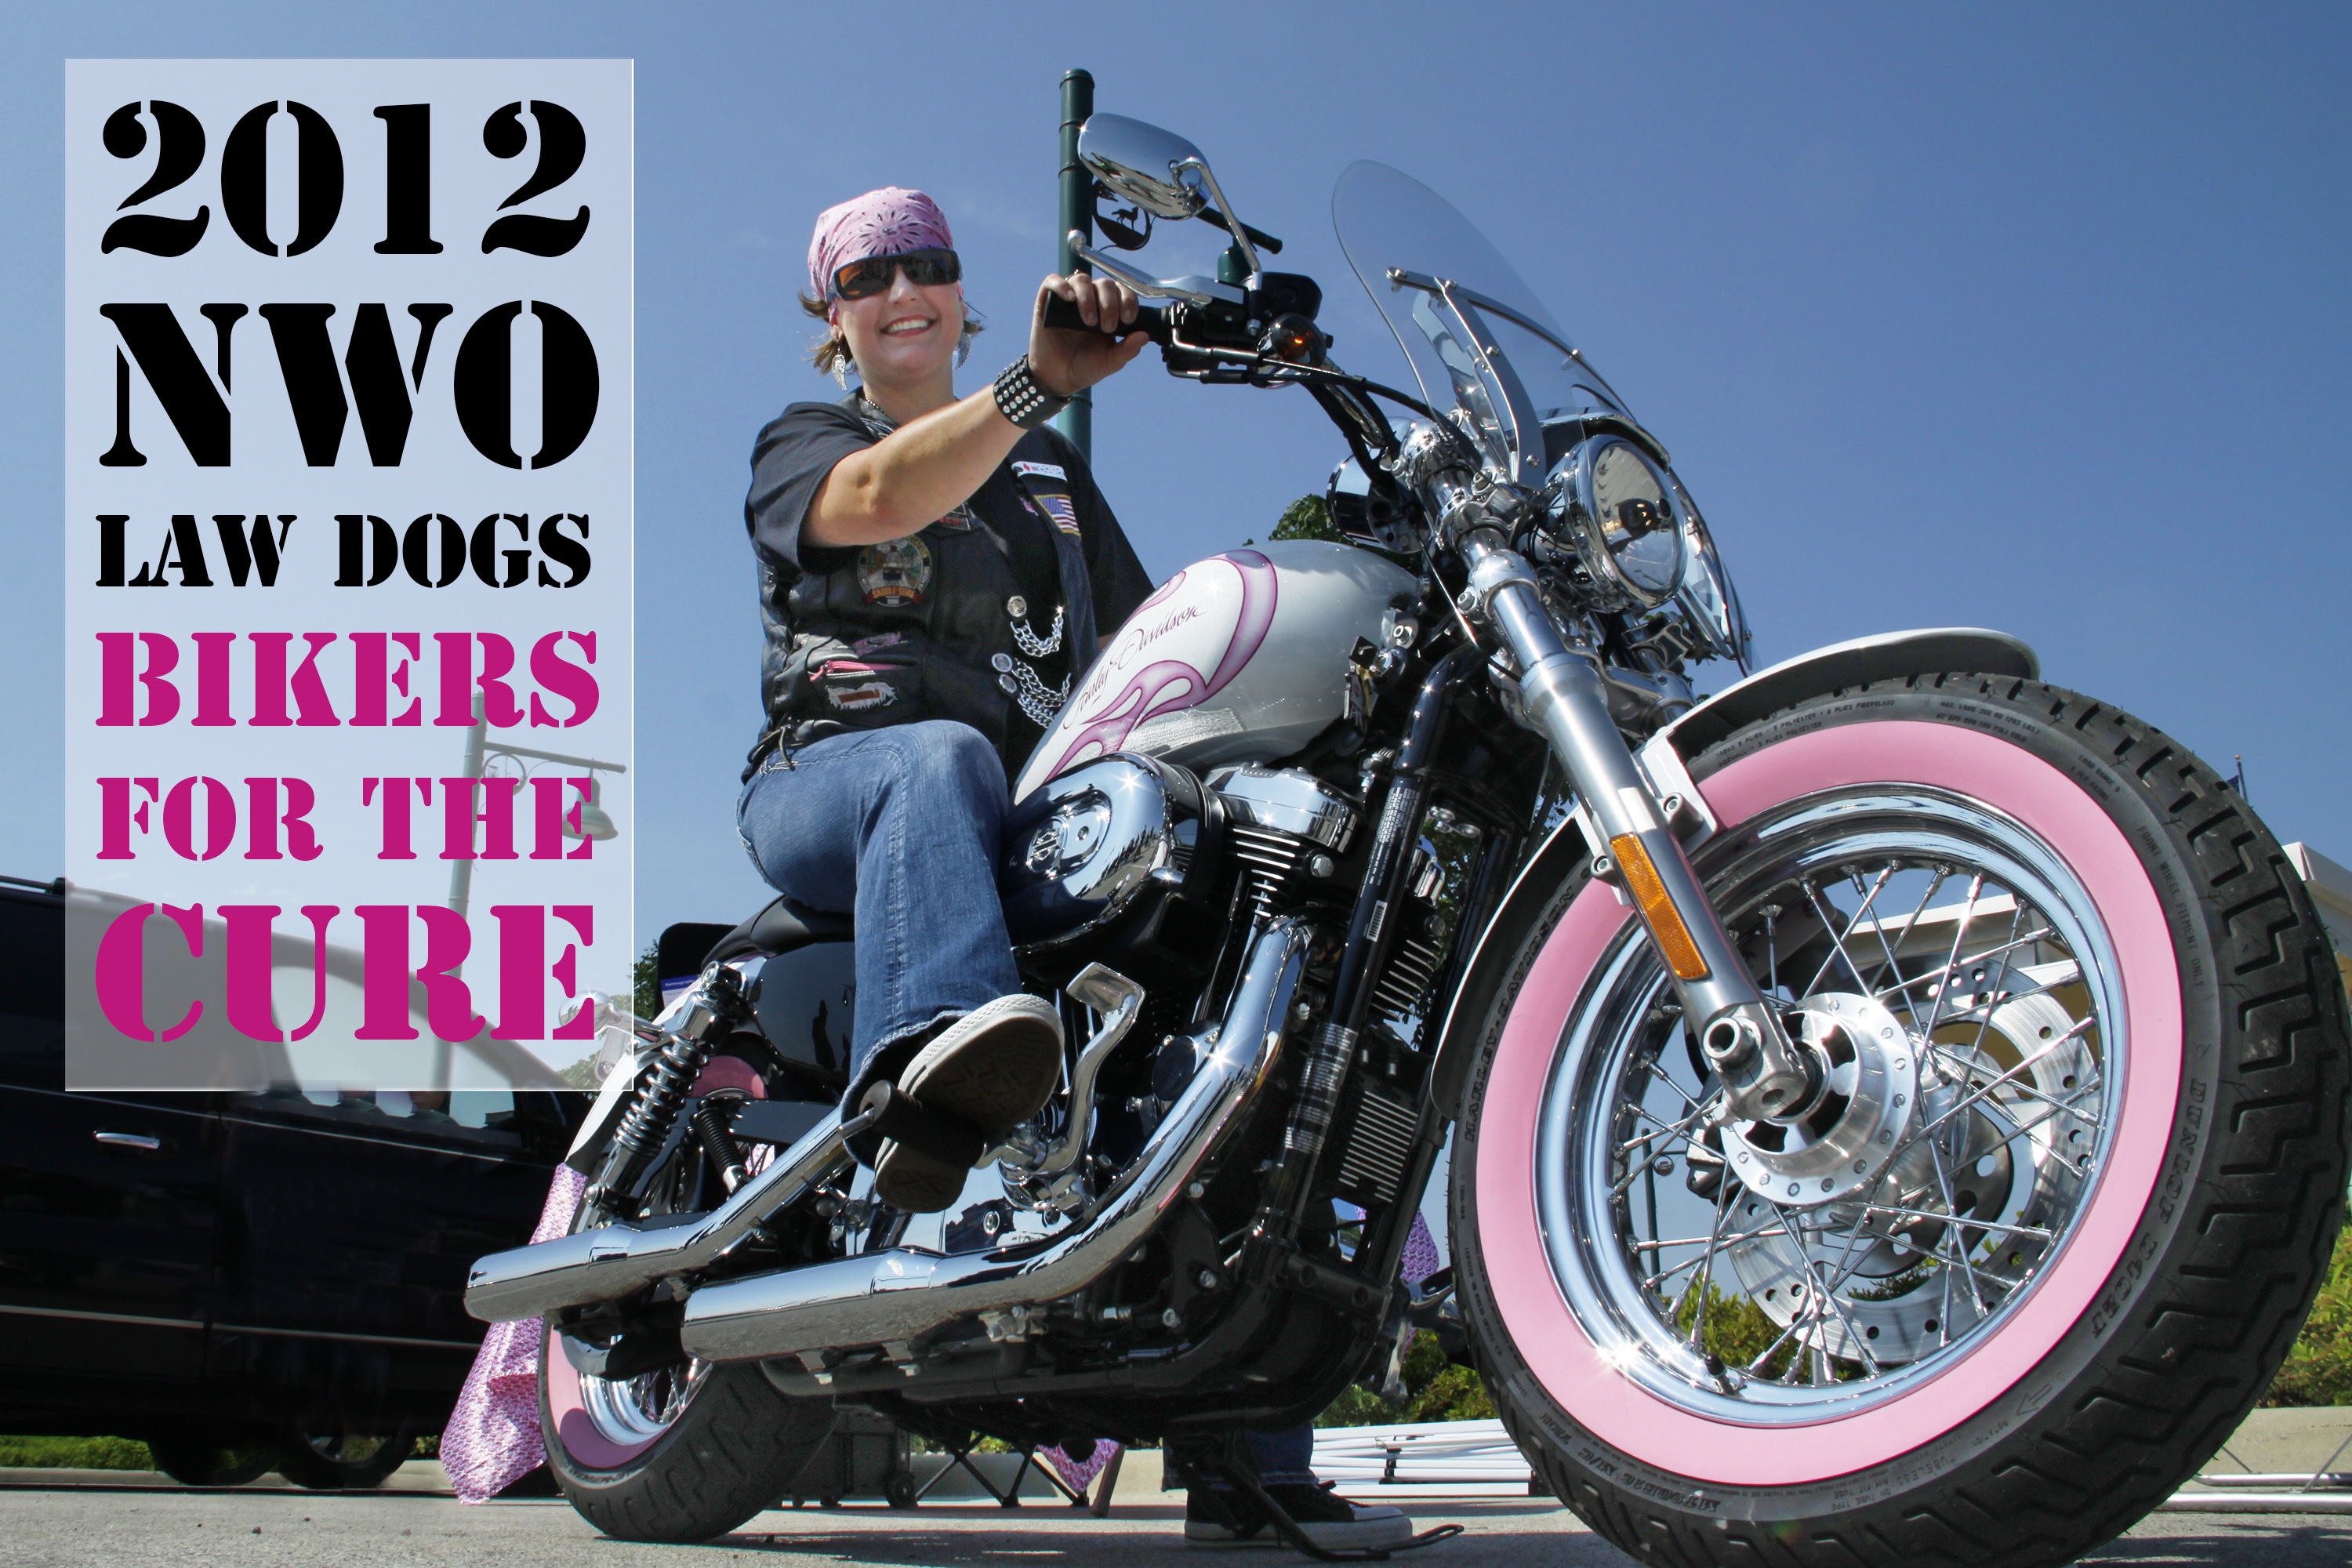 Bikers for the Cure